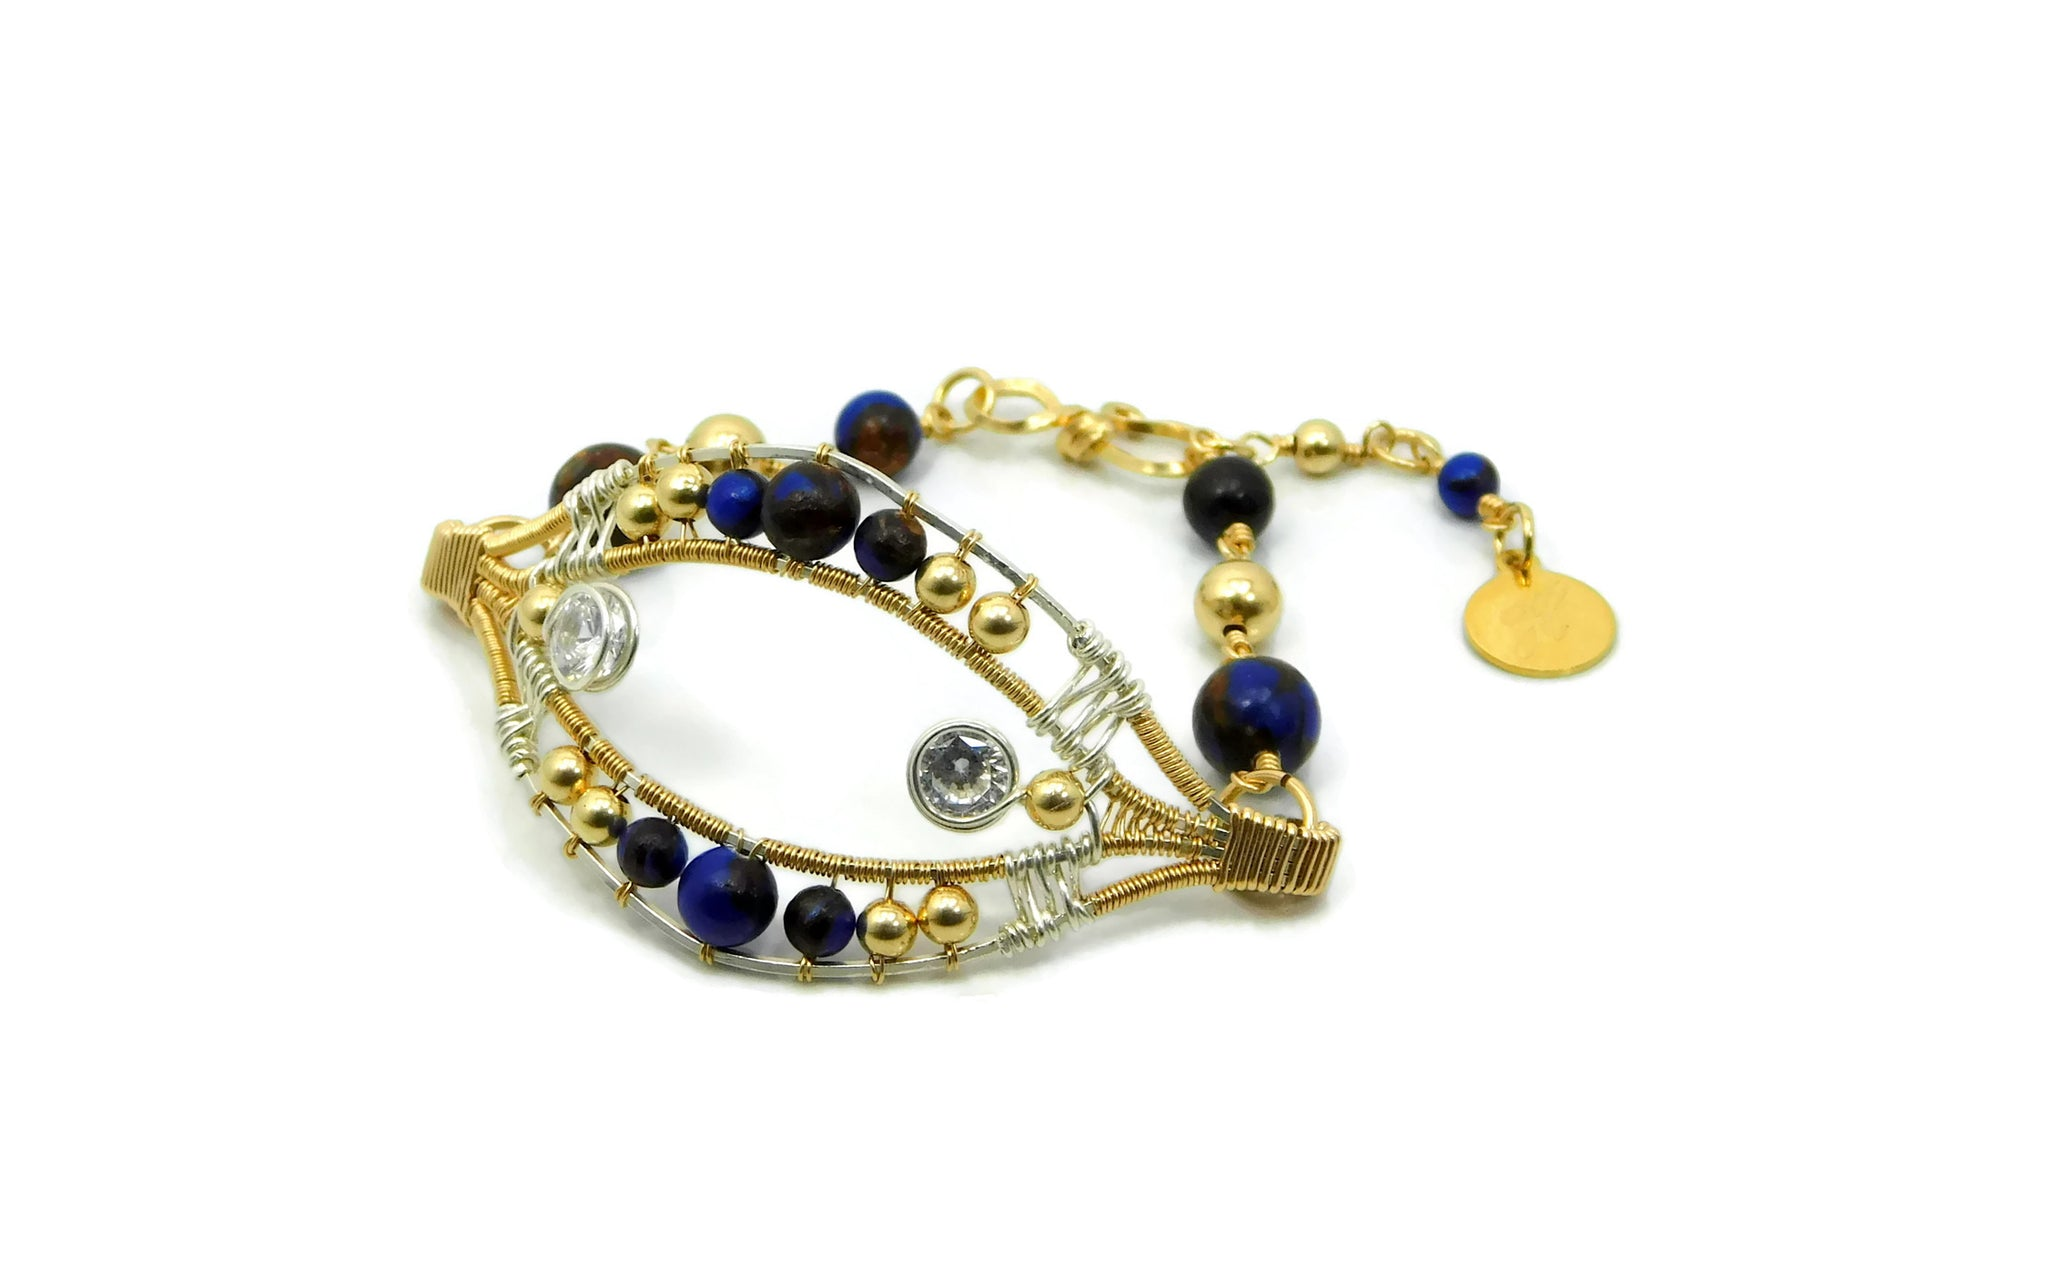 Lapis & Bronzite Joy Bracelet with Herkimer Diamonds in 14kt gold fill and sterling silver